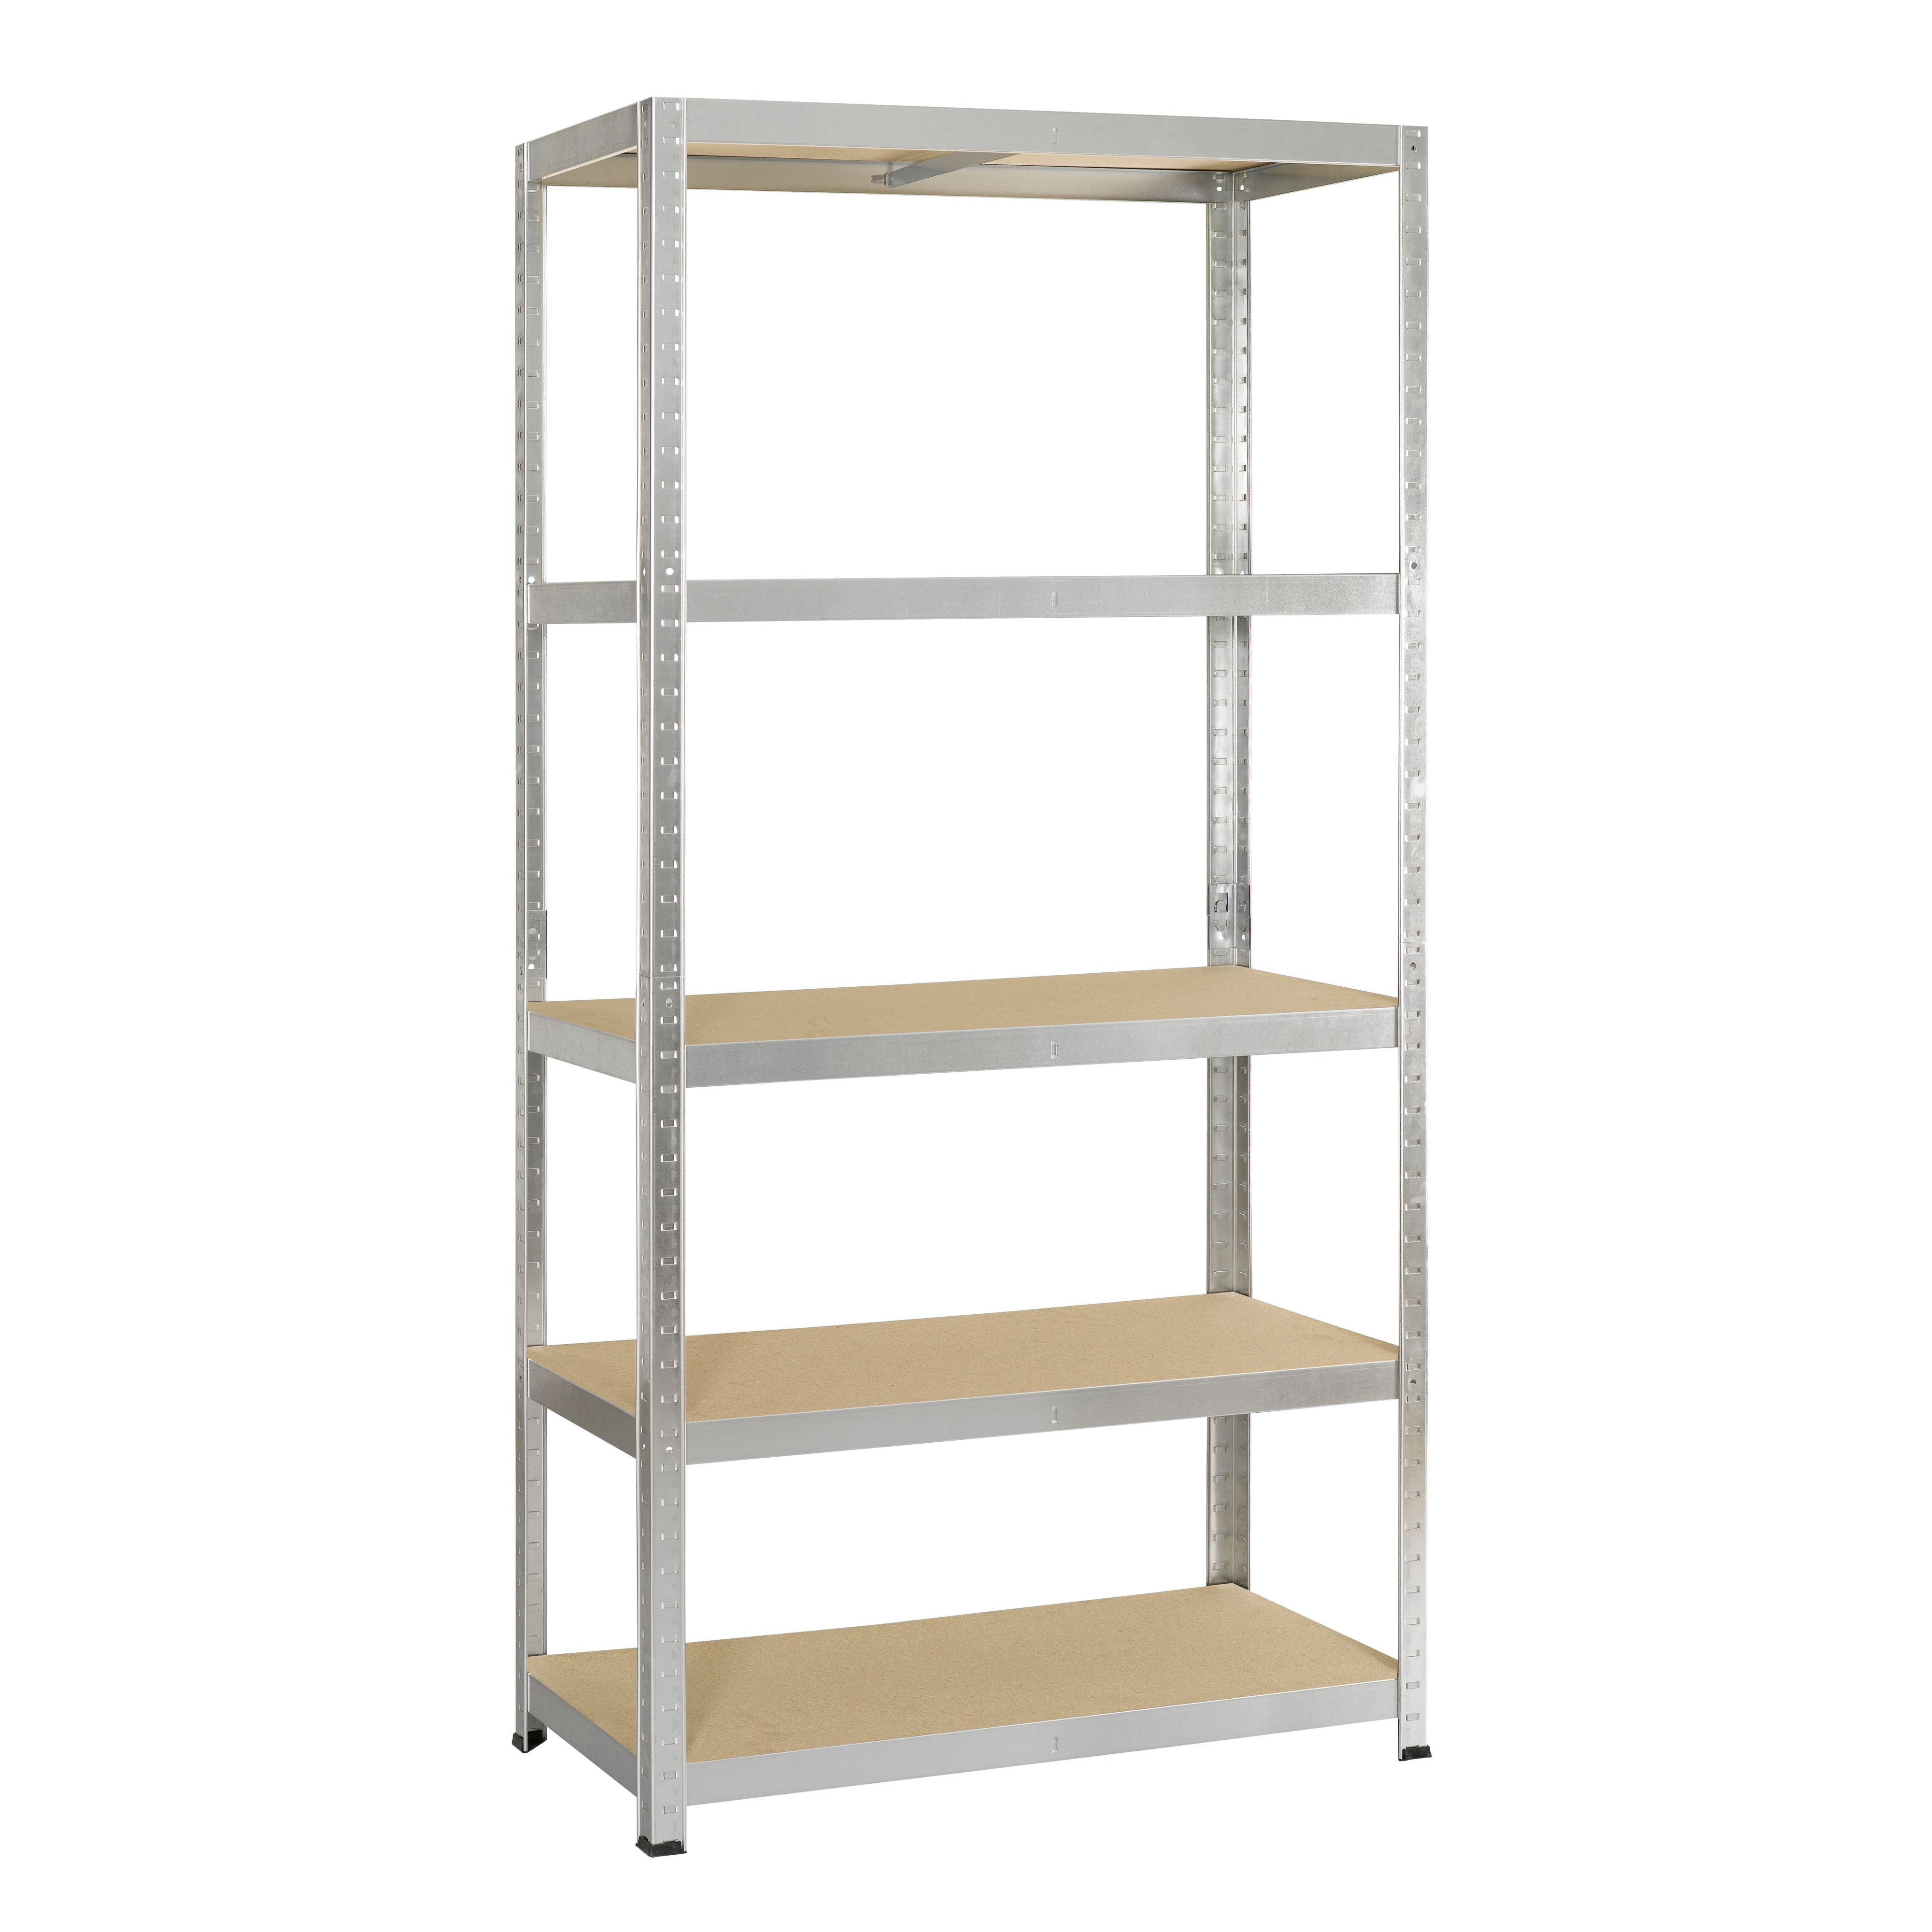 avasco 5 tier metal shelving unit departments diy at b q. Black Bedroom Furniture Sets. Home Design Ideas